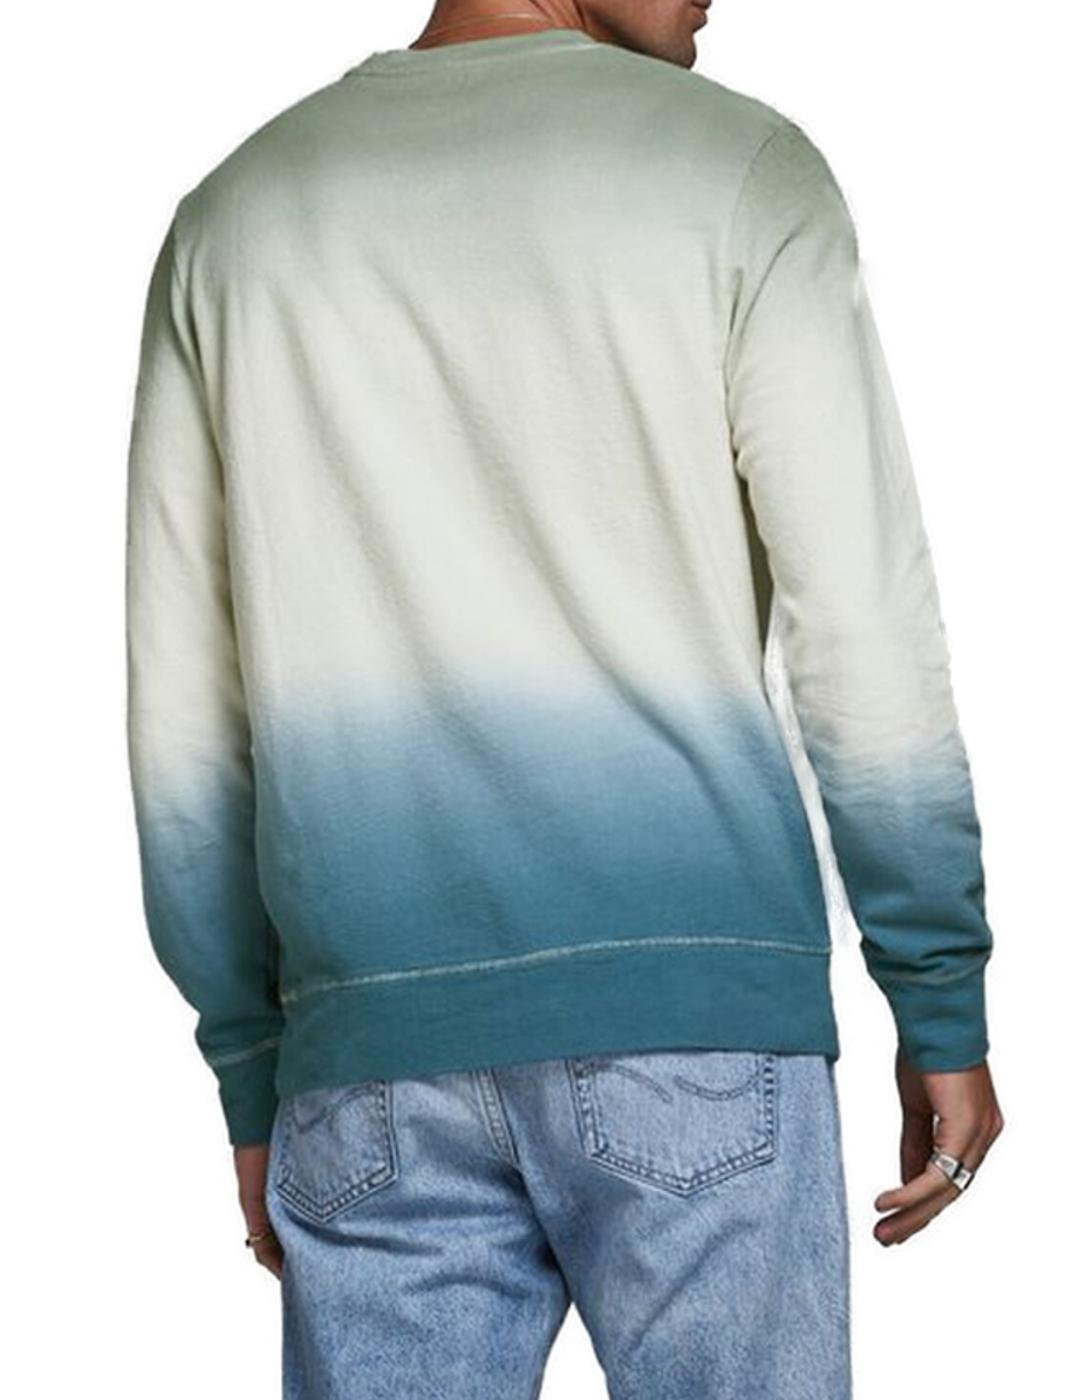 JORTIEDYE SWEAT CREW NECK GREEN-X